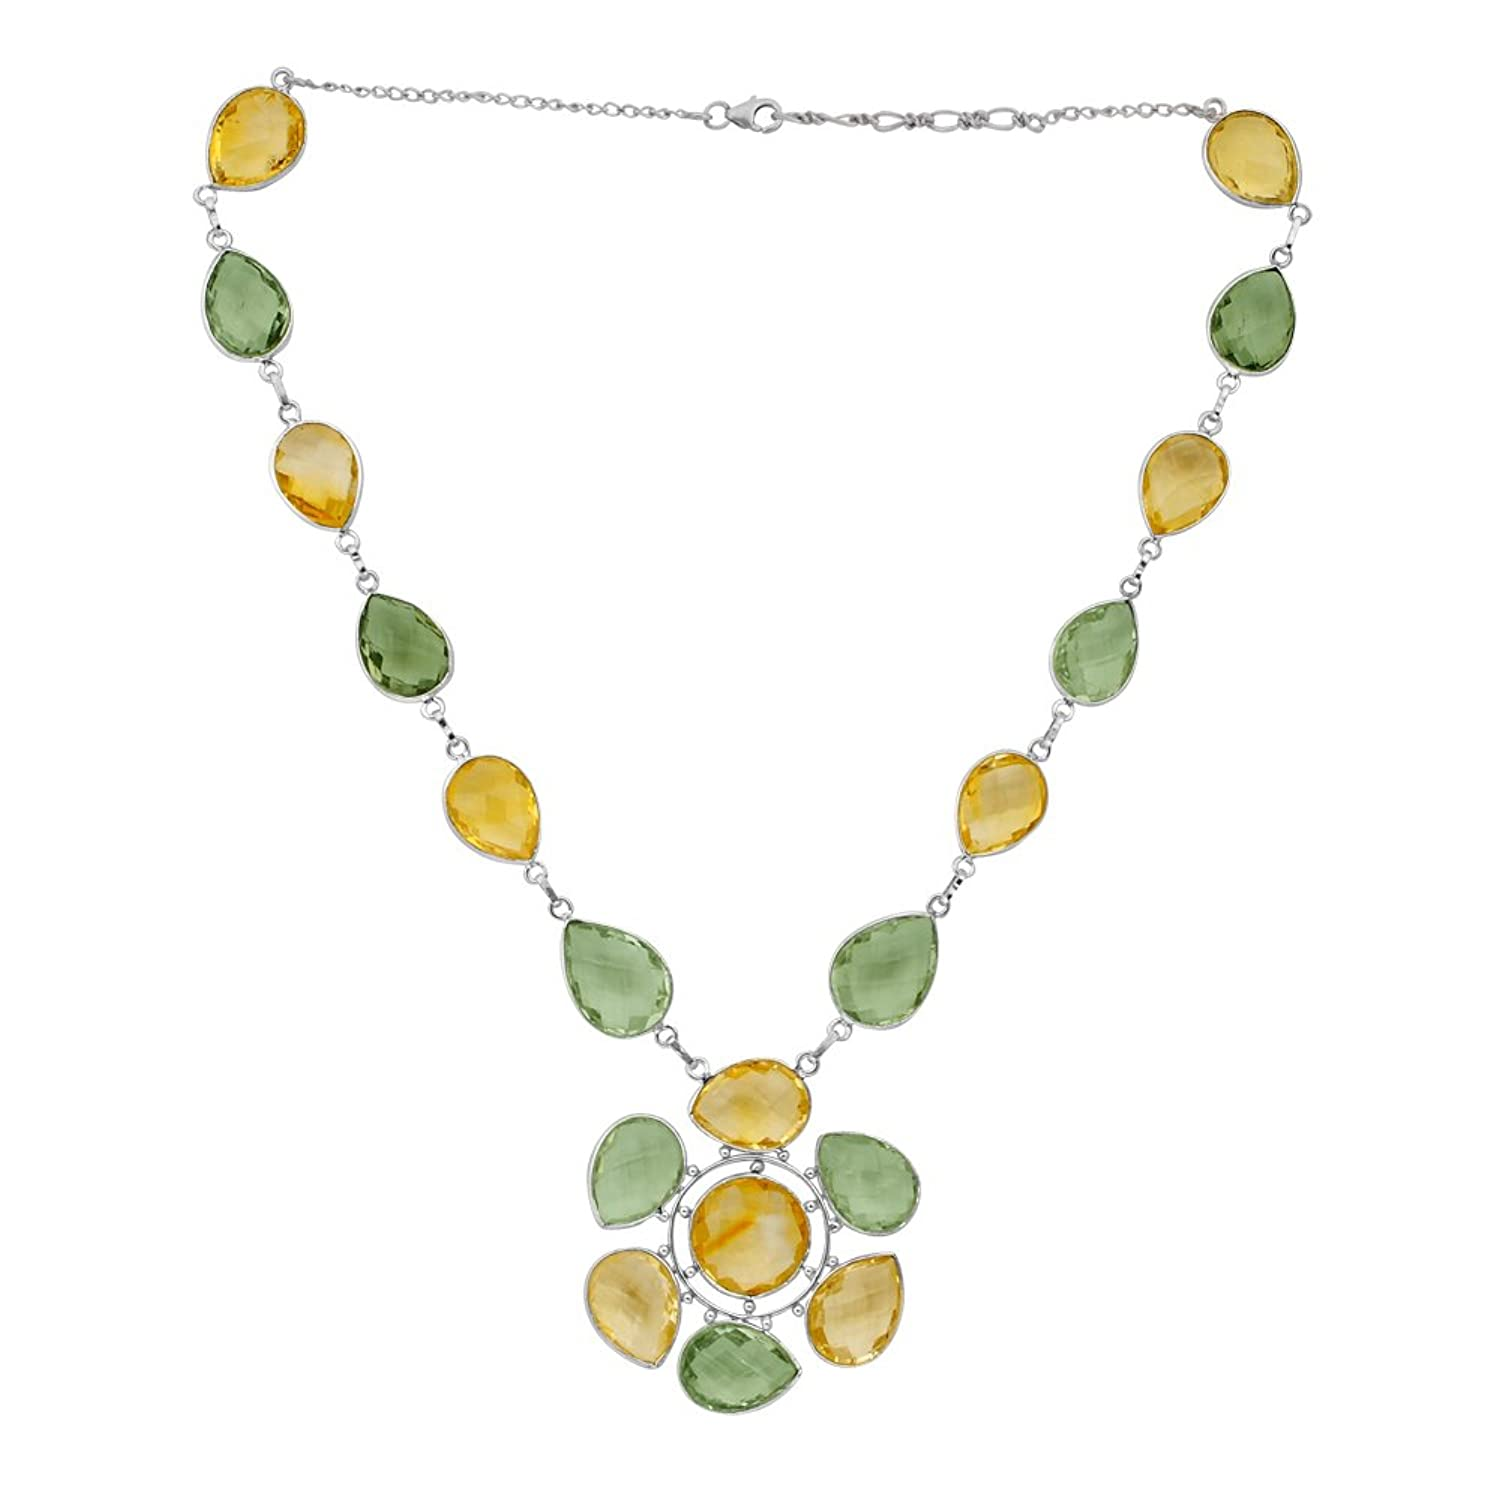 130 Ct Citrine Green Amethyst Solid Sterling Silver Natural Golden Orange 13ct Statement Necklace Jewelry